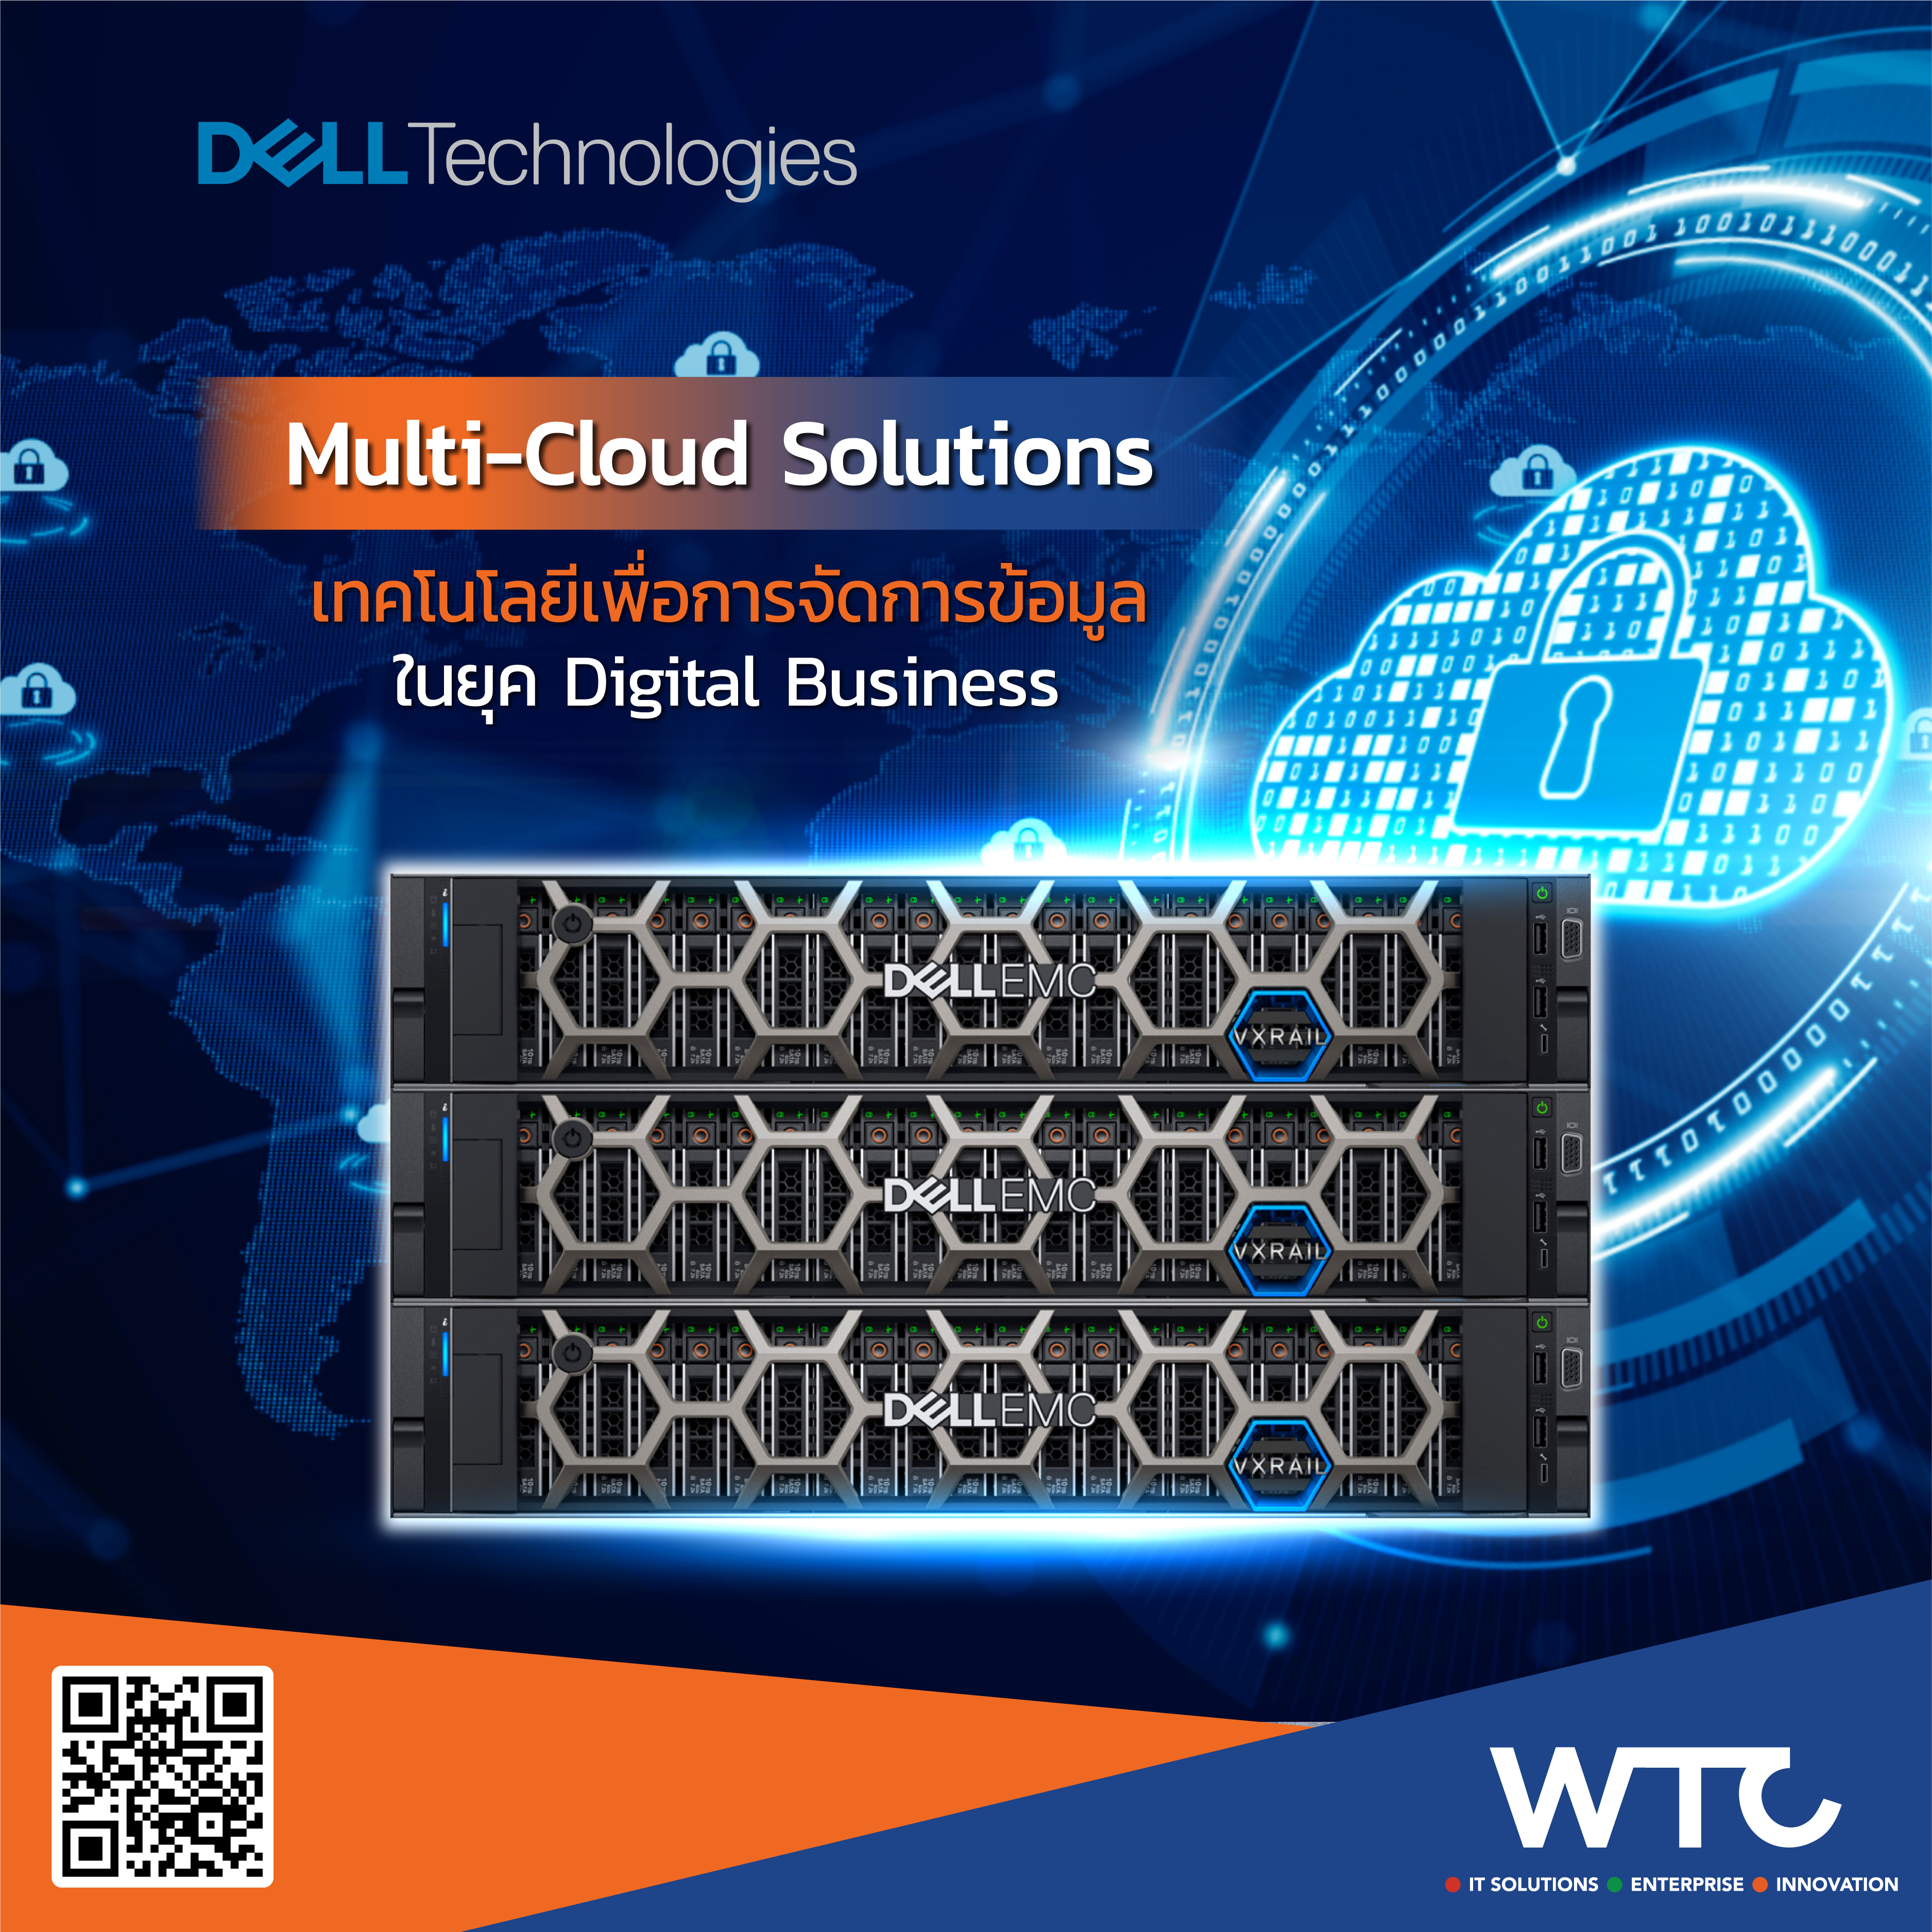 AW_07_DELL_MULTI_CLOUD1